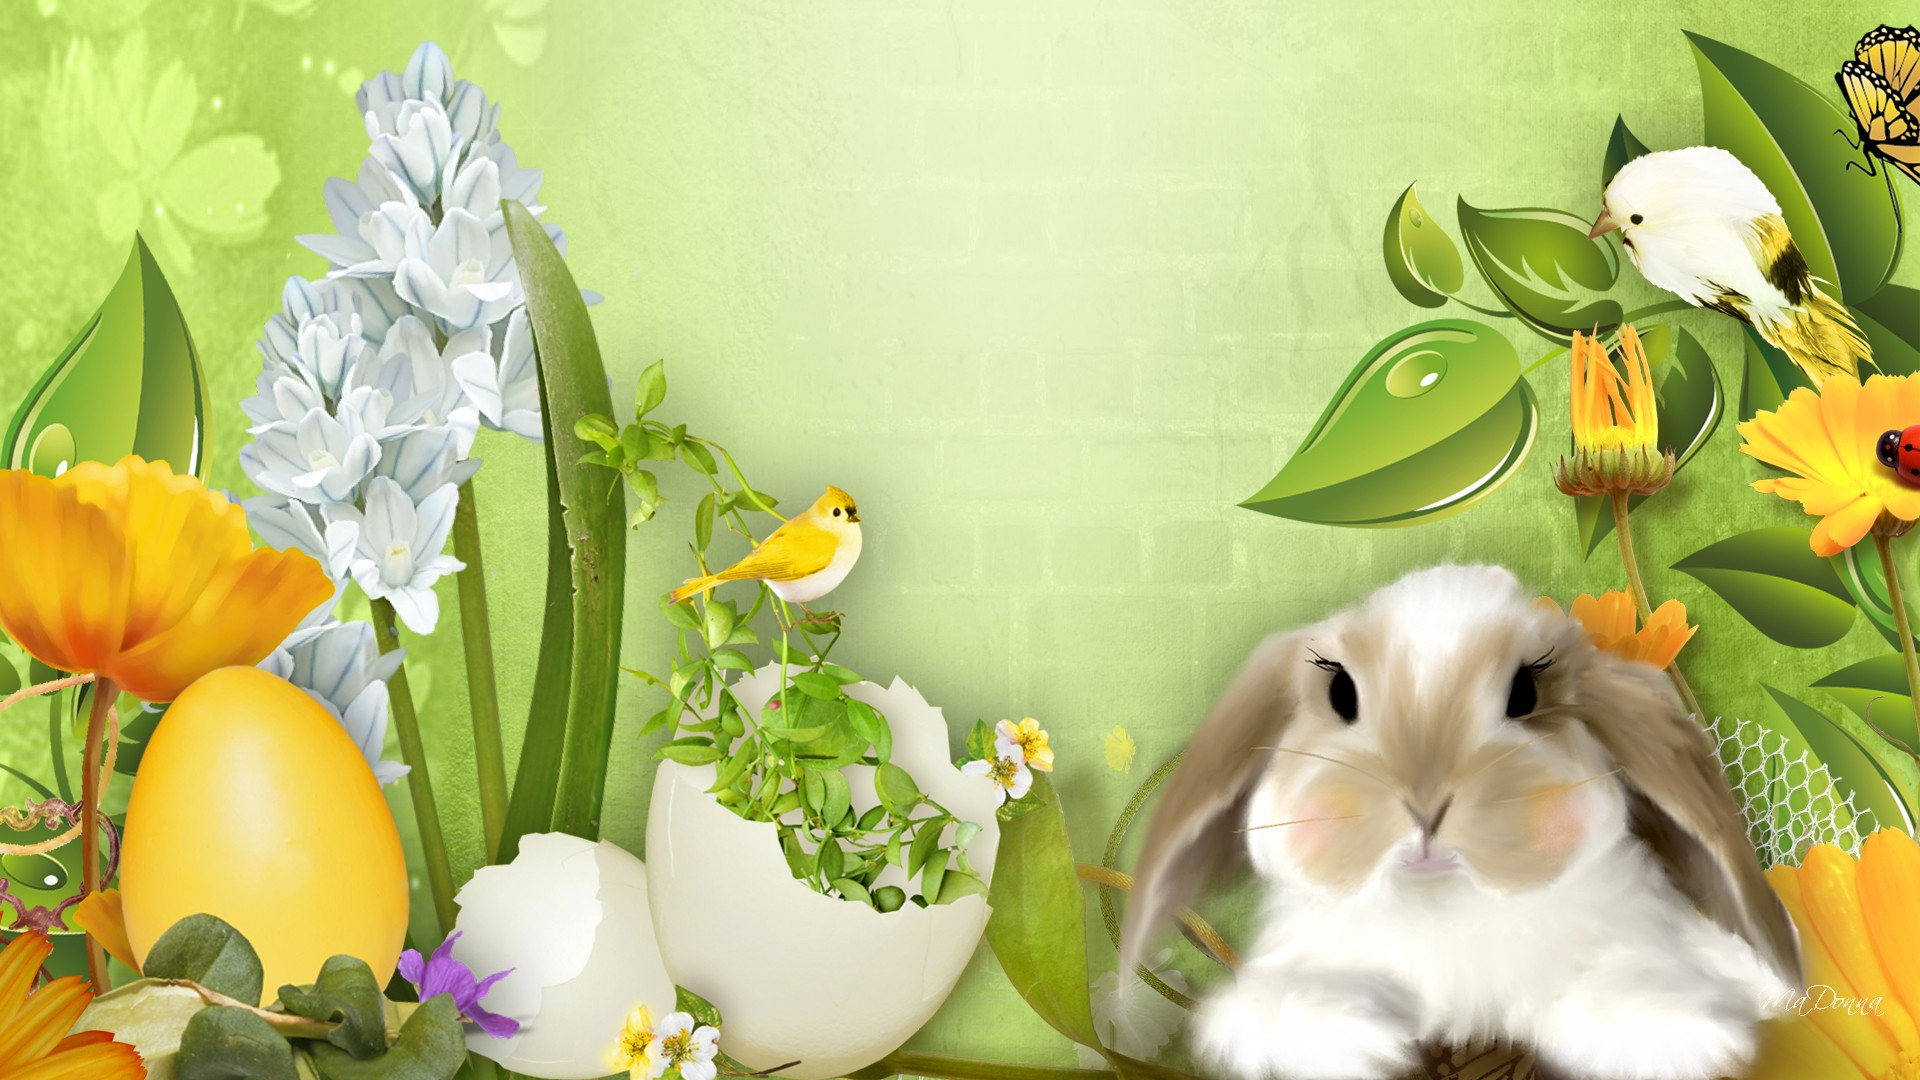 Easter 2014 HD   Wallpaper High Definition High Quality Widescreen 1920x1080